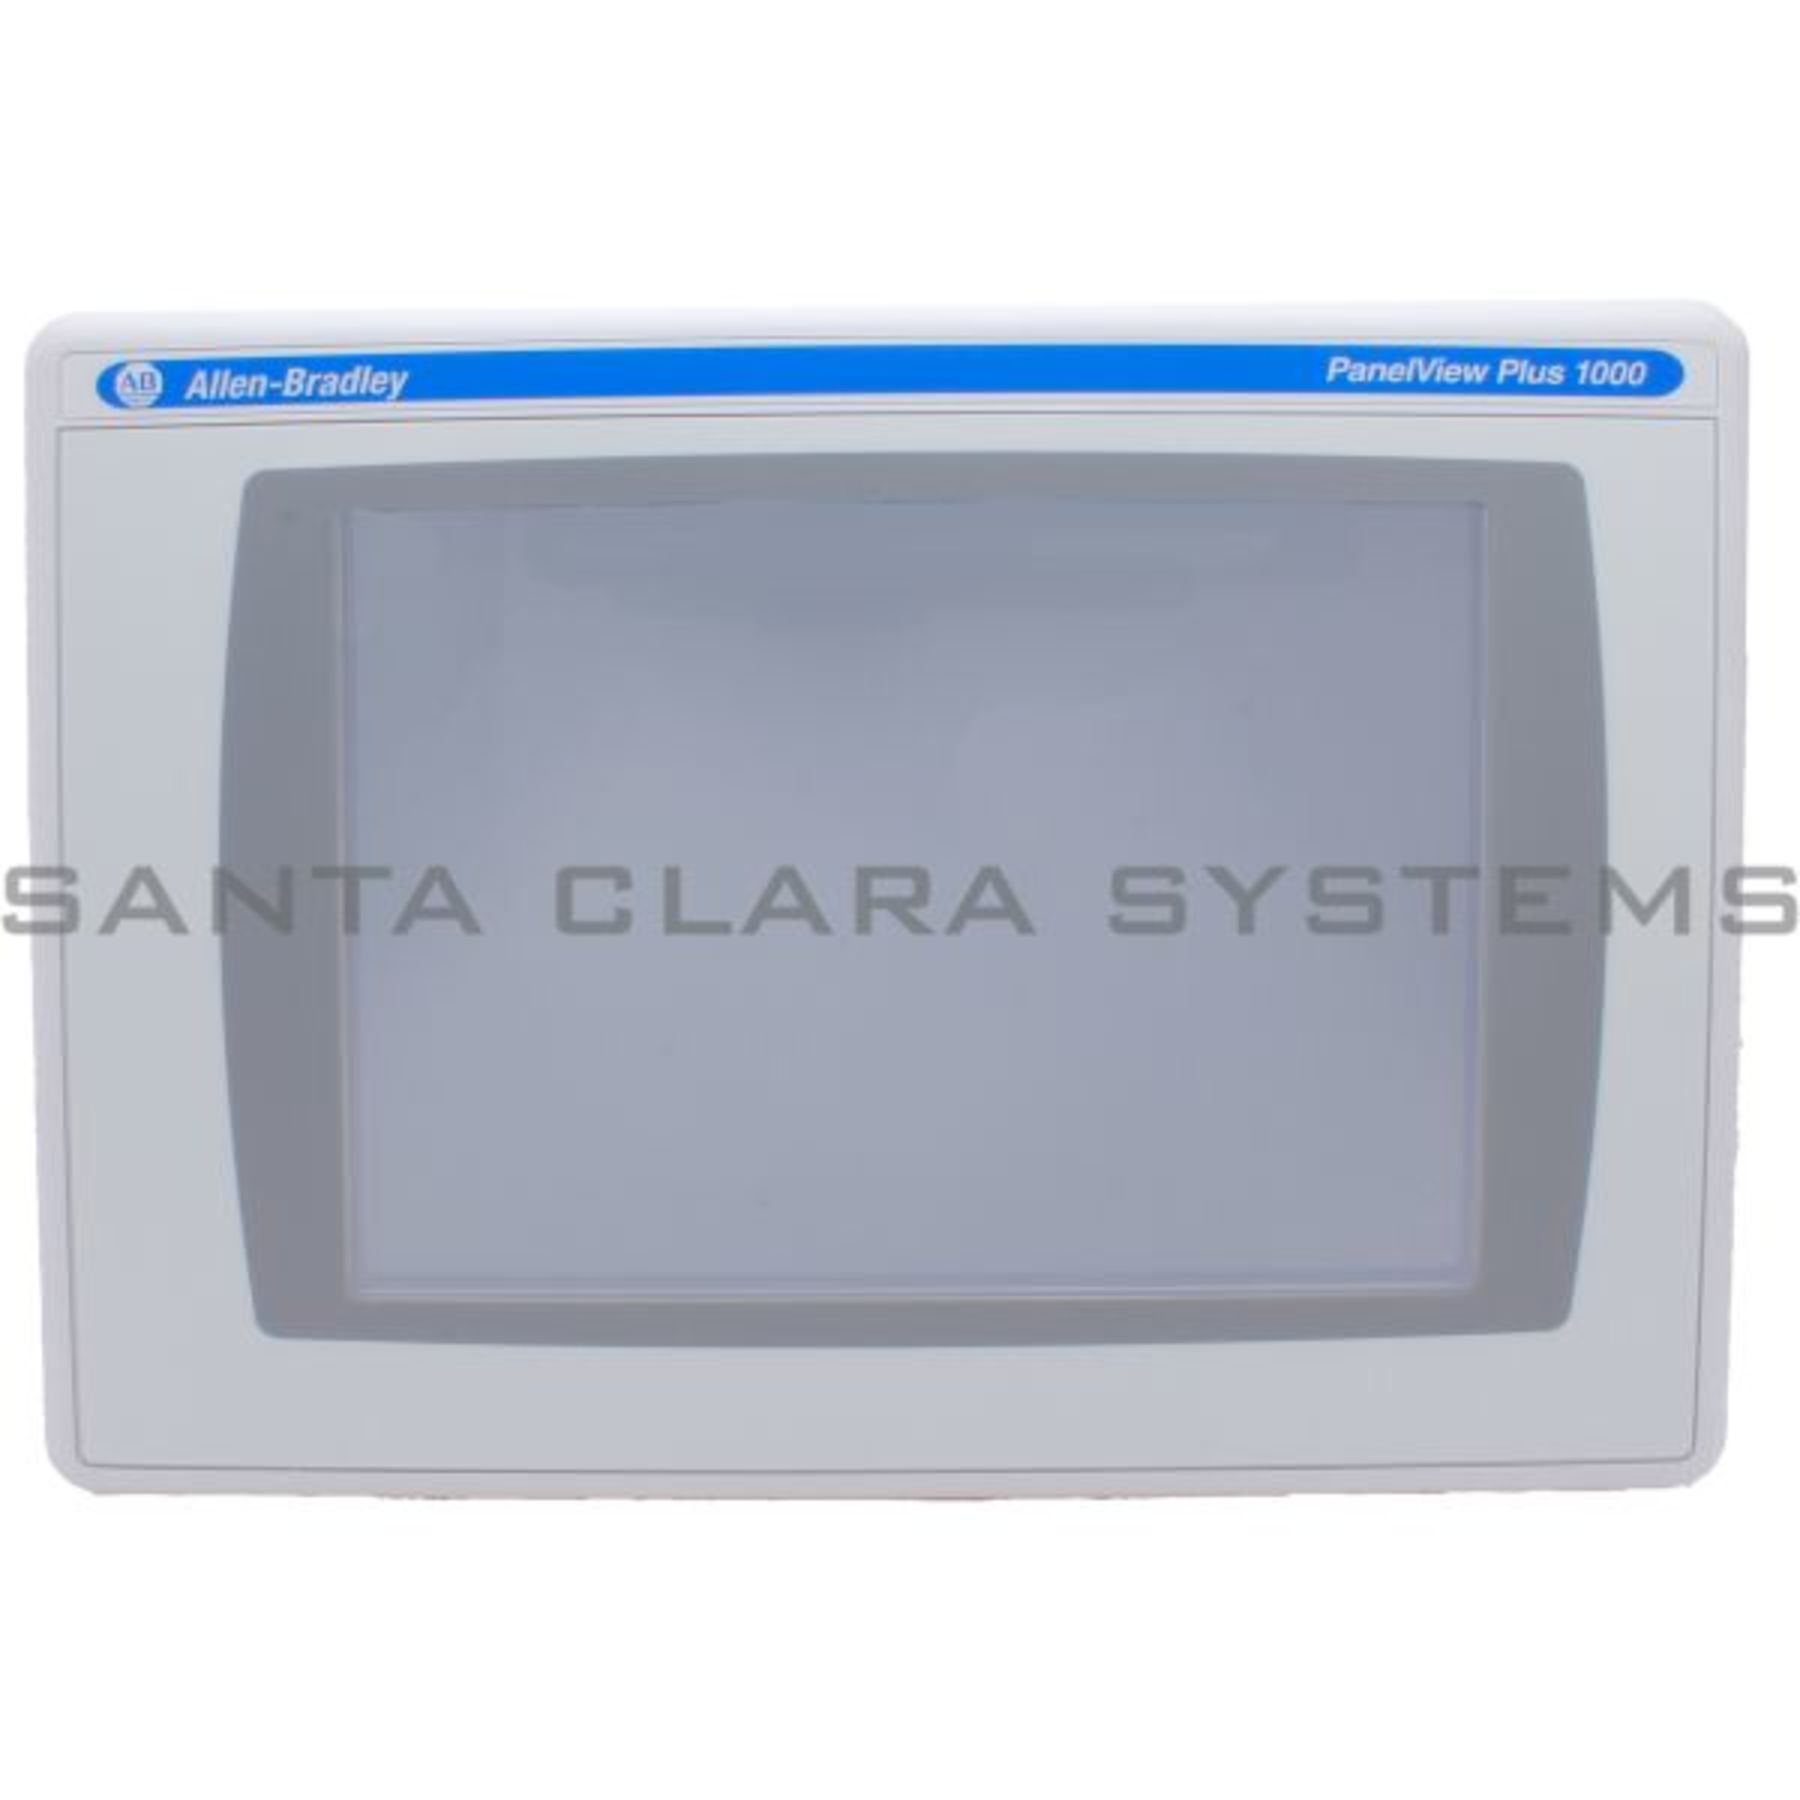 Full face screen protector for allen bradley panelview plus 1000.